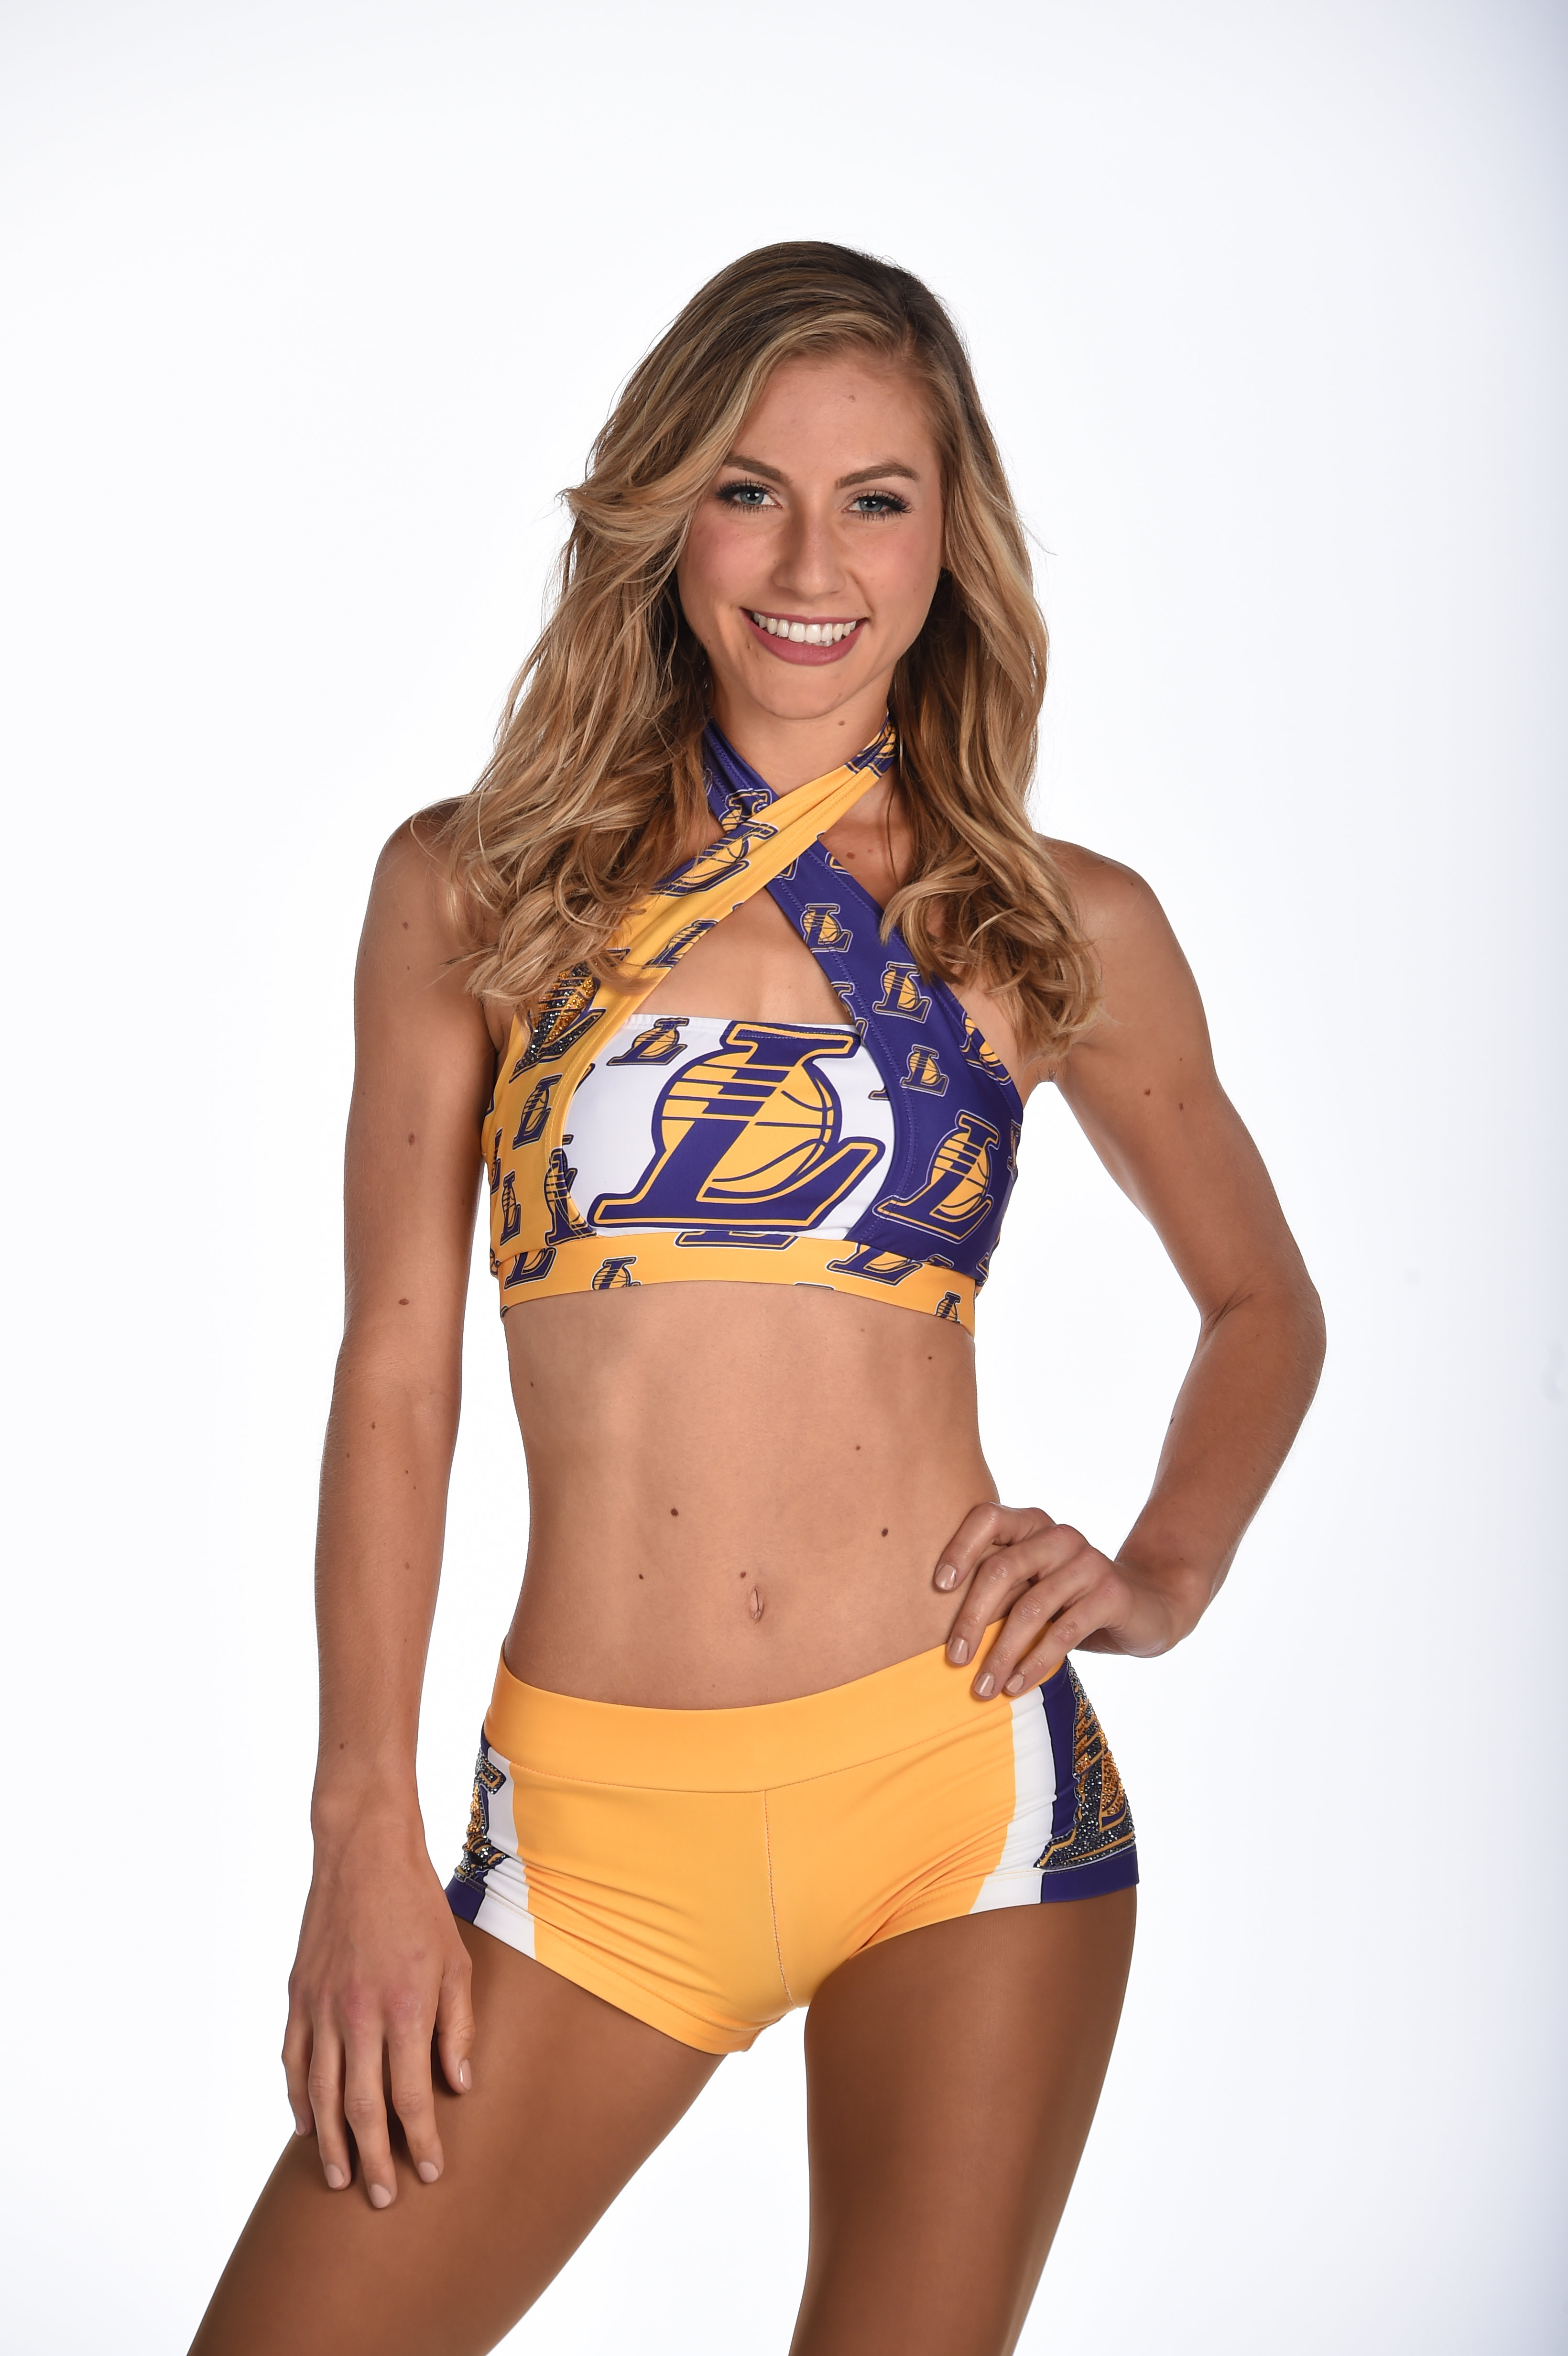 Laker Girls - Emily